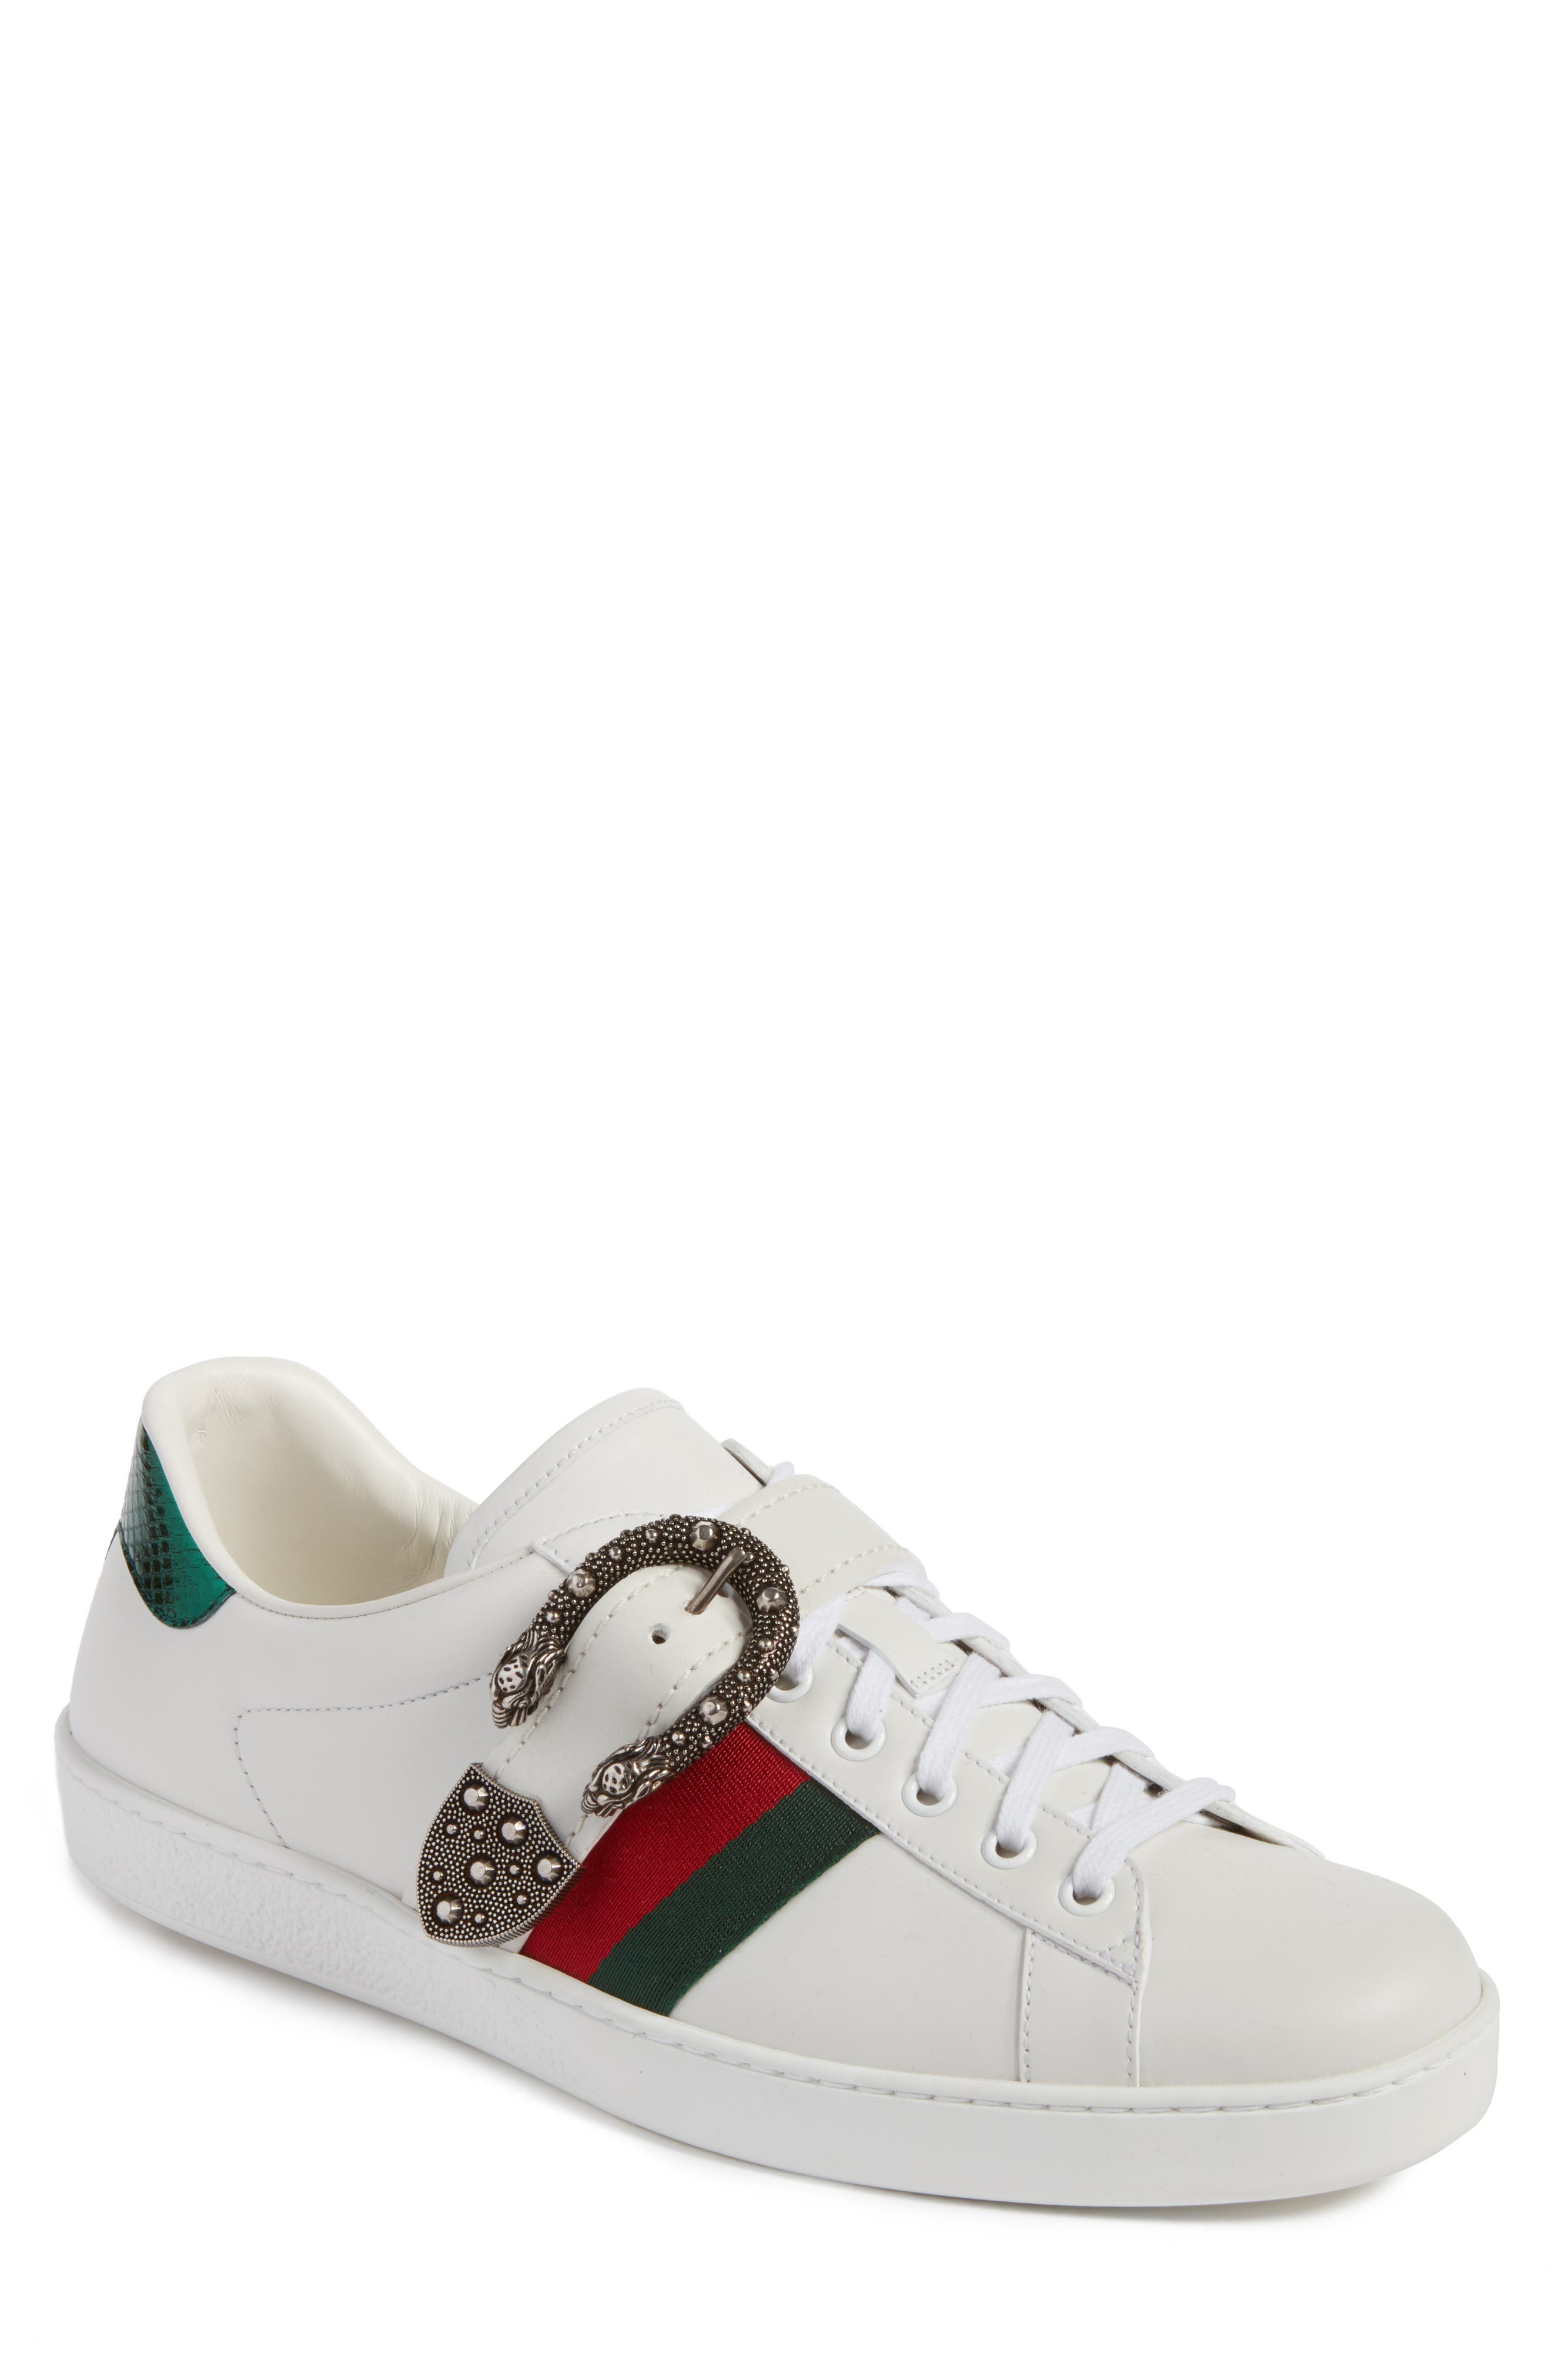 gucci shoes for men low tops. main image - gucci new ace dionysus buckle low top sneaker (men) shoes for men tops